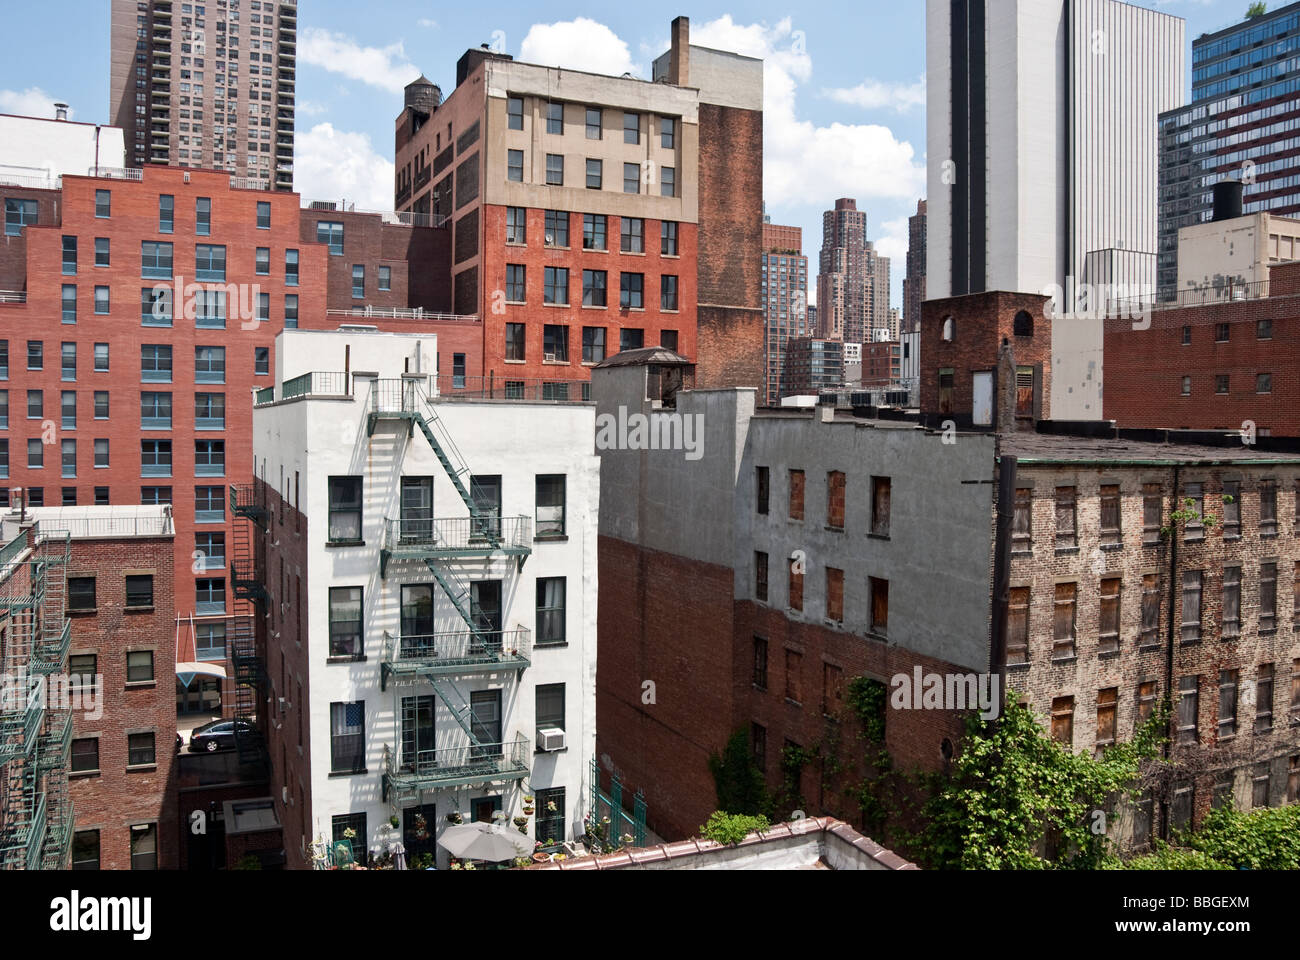 old, new & refurbished buildings seen against the rapidly changing skyline in Hells Kitchen, Manhattan, New York Stock Photo